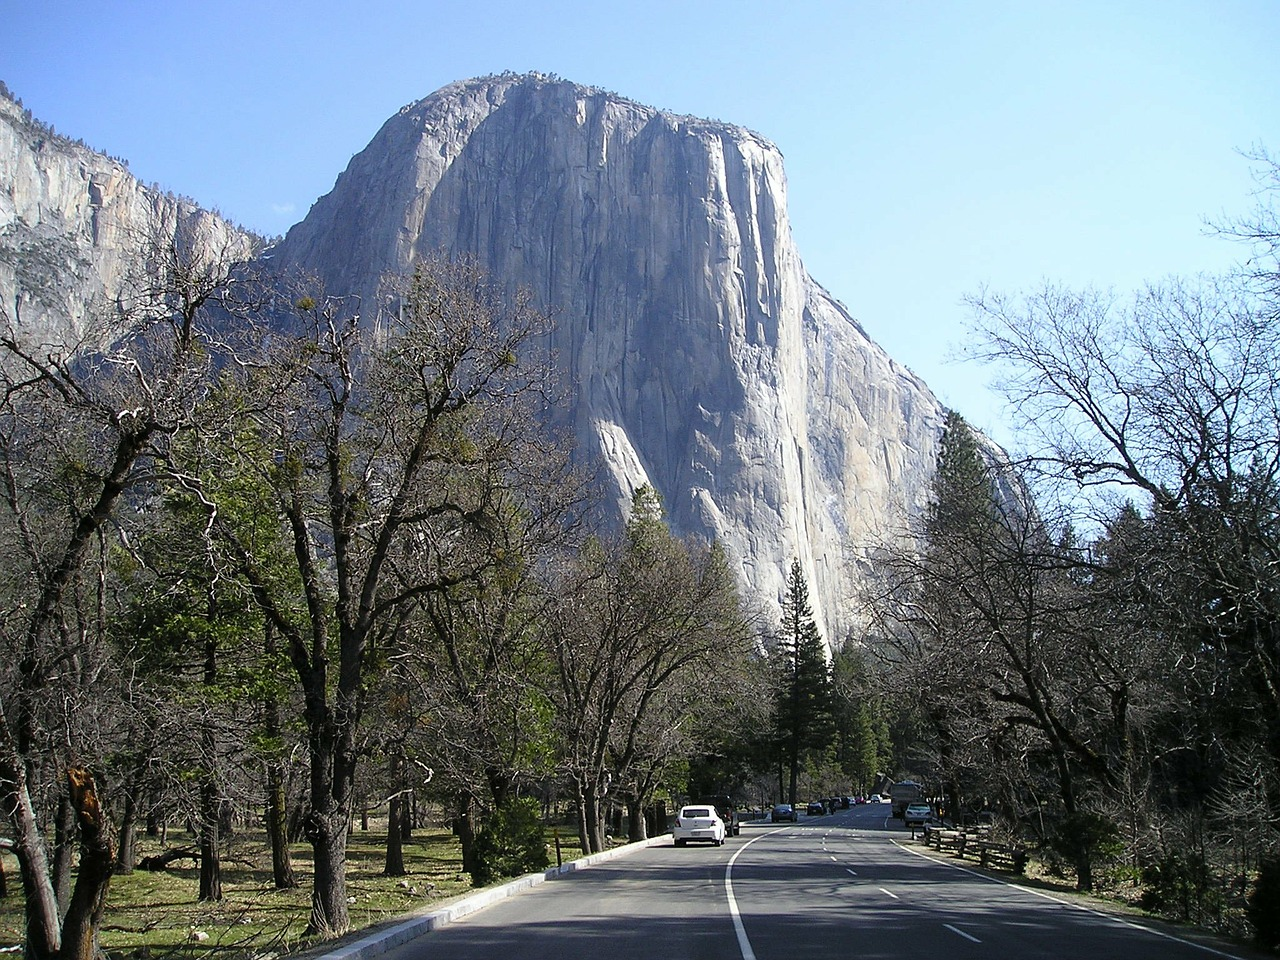 usa,yosemite,national park,el capitan,yosemite national park,california,climb,steep wall,steep,high,alpine climbing,bergsport,extreme sports,mountain,free pictures, free photos, free images, royalty free, free illustrations, public domain